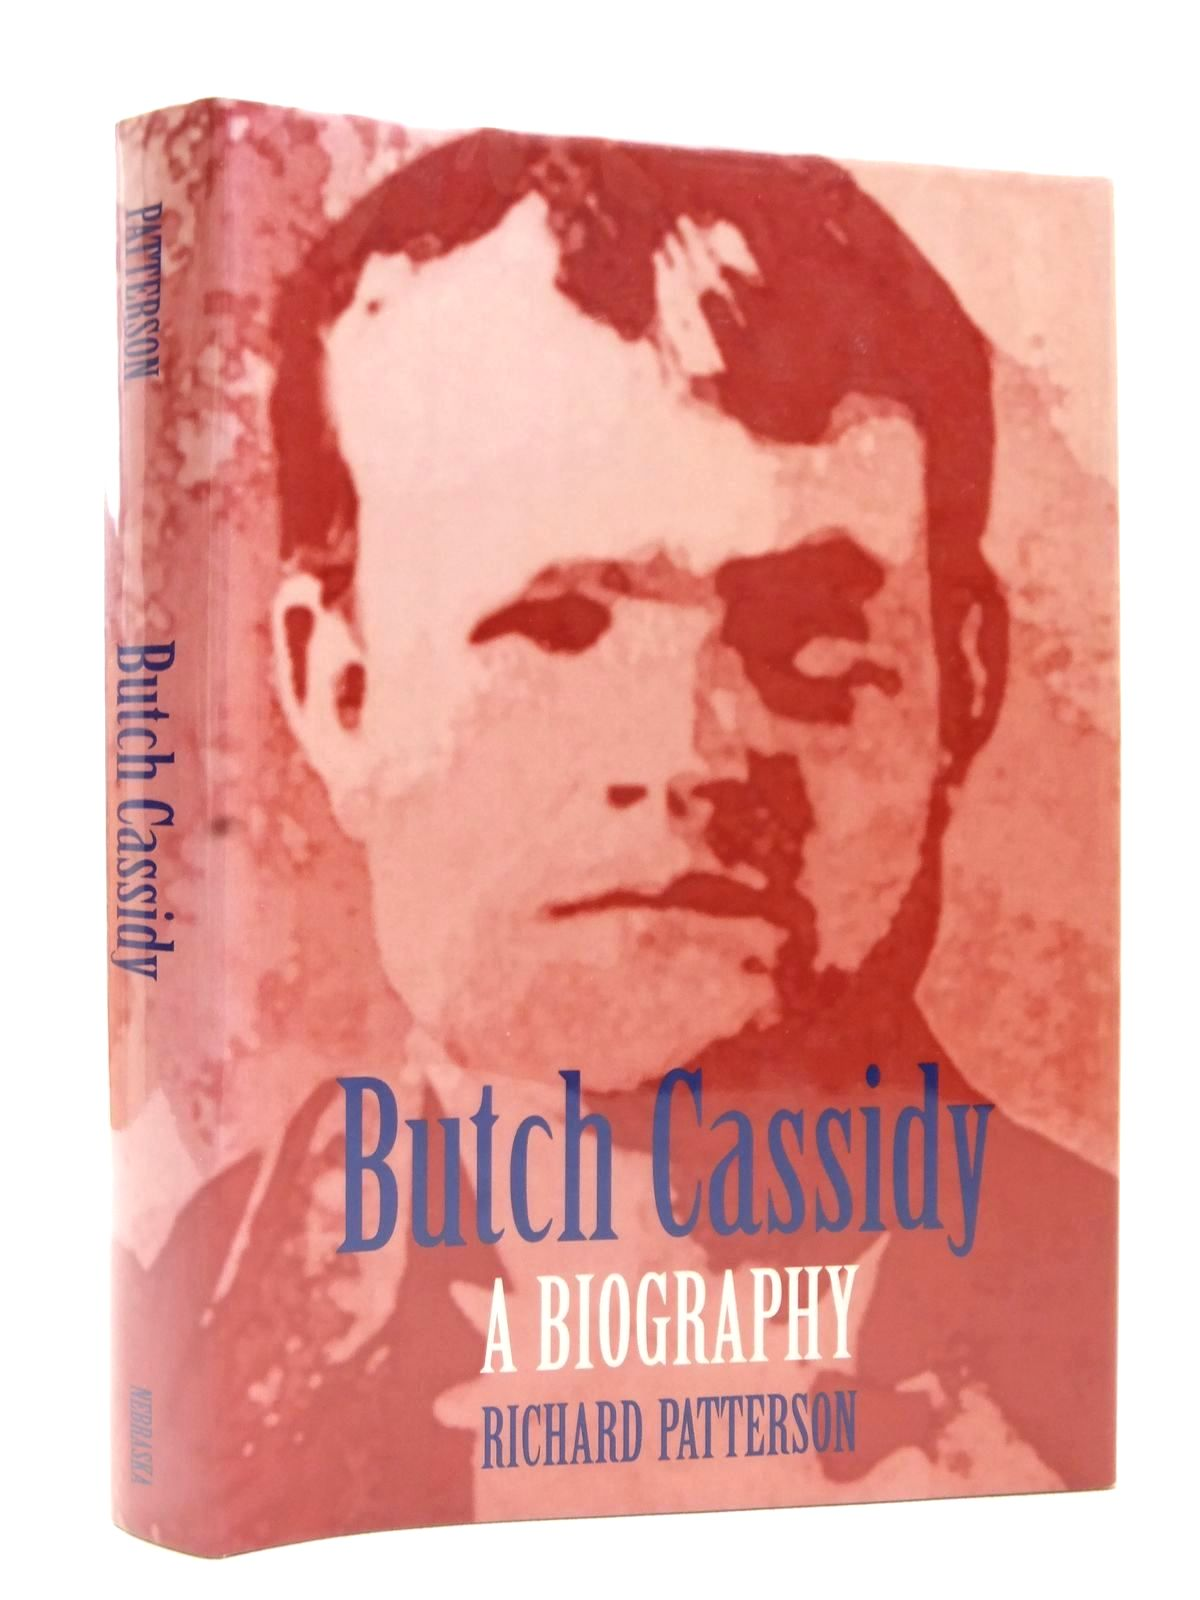 Photo of BUTCH CASSIDY A BIOGRAPHY written by Patterson, Richard published by University of Nebraska (STOCK CODE: 1609326)  for sale by Stella & Rose's Books